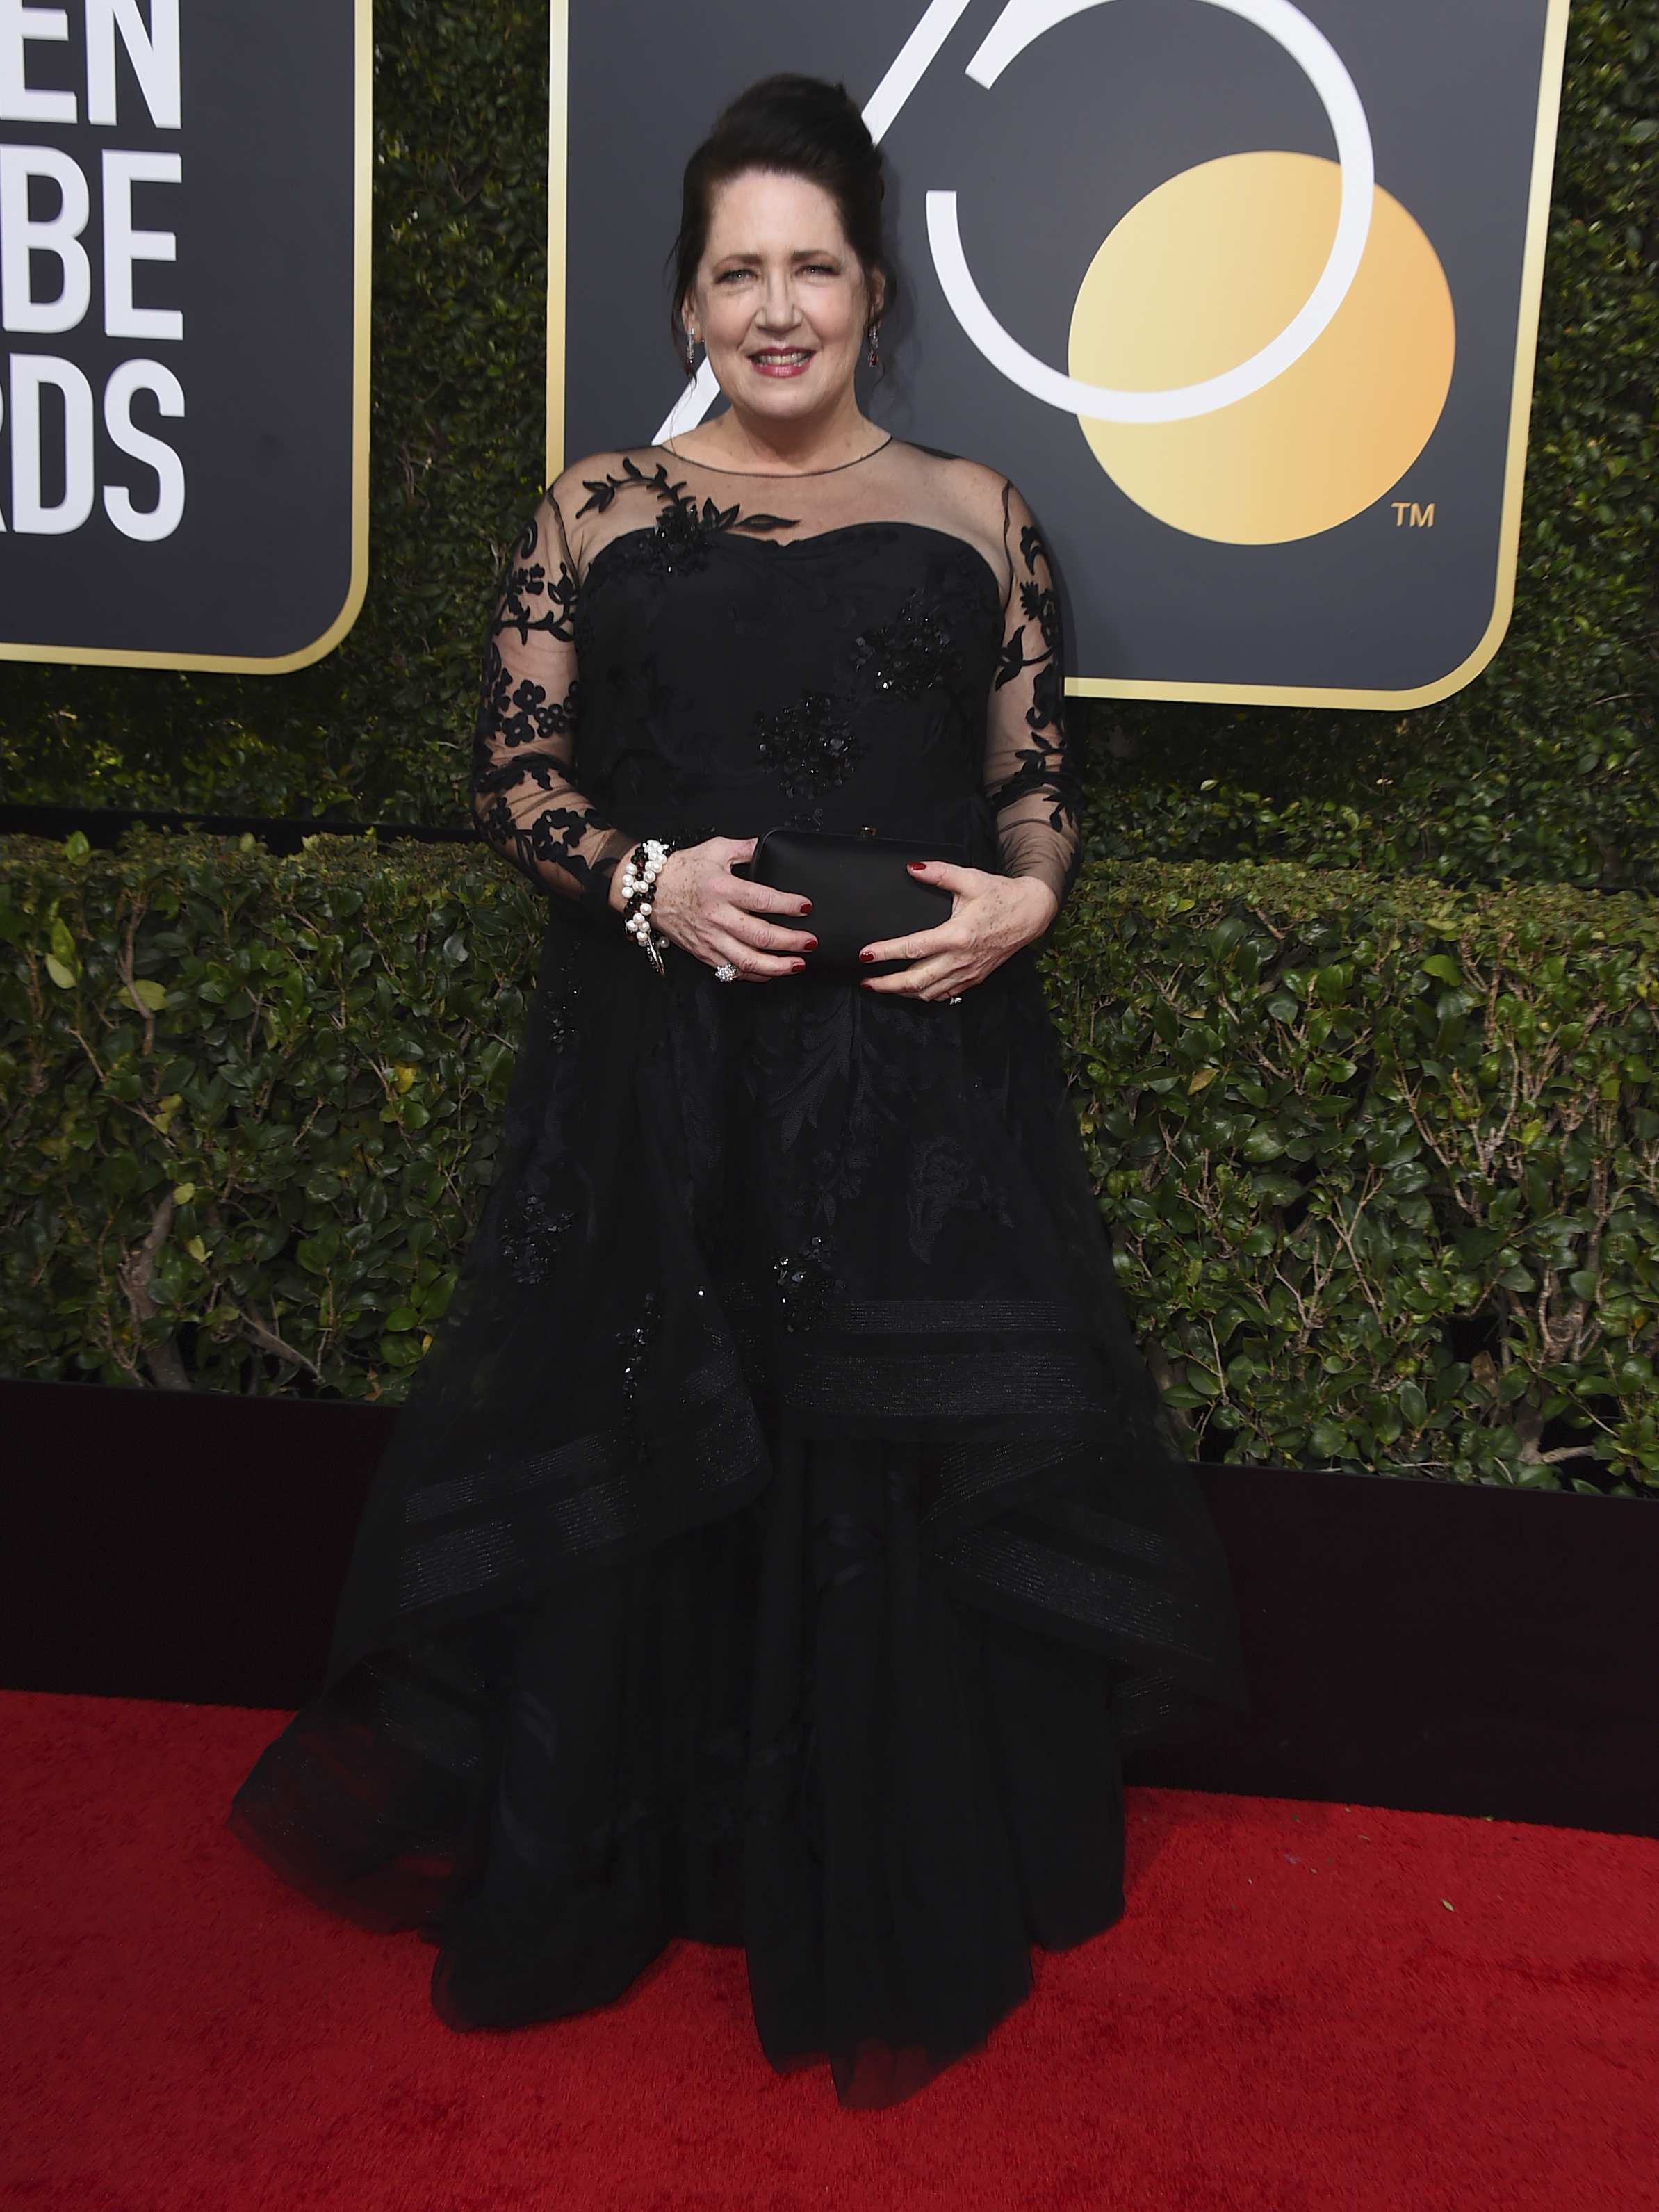 <div class='meta'><div class='origin-logo' data-origin='AP'></div><span class='caption-text' data-credit='Jordan Strauss/Invision/AP'>Ann Dowd arrives at the 75th annual Golden Globe Awards at the Beverly Hilton Hotel on Sunday, Jan. 7, 2018, in Beverly Hills, Calif.</span></div>